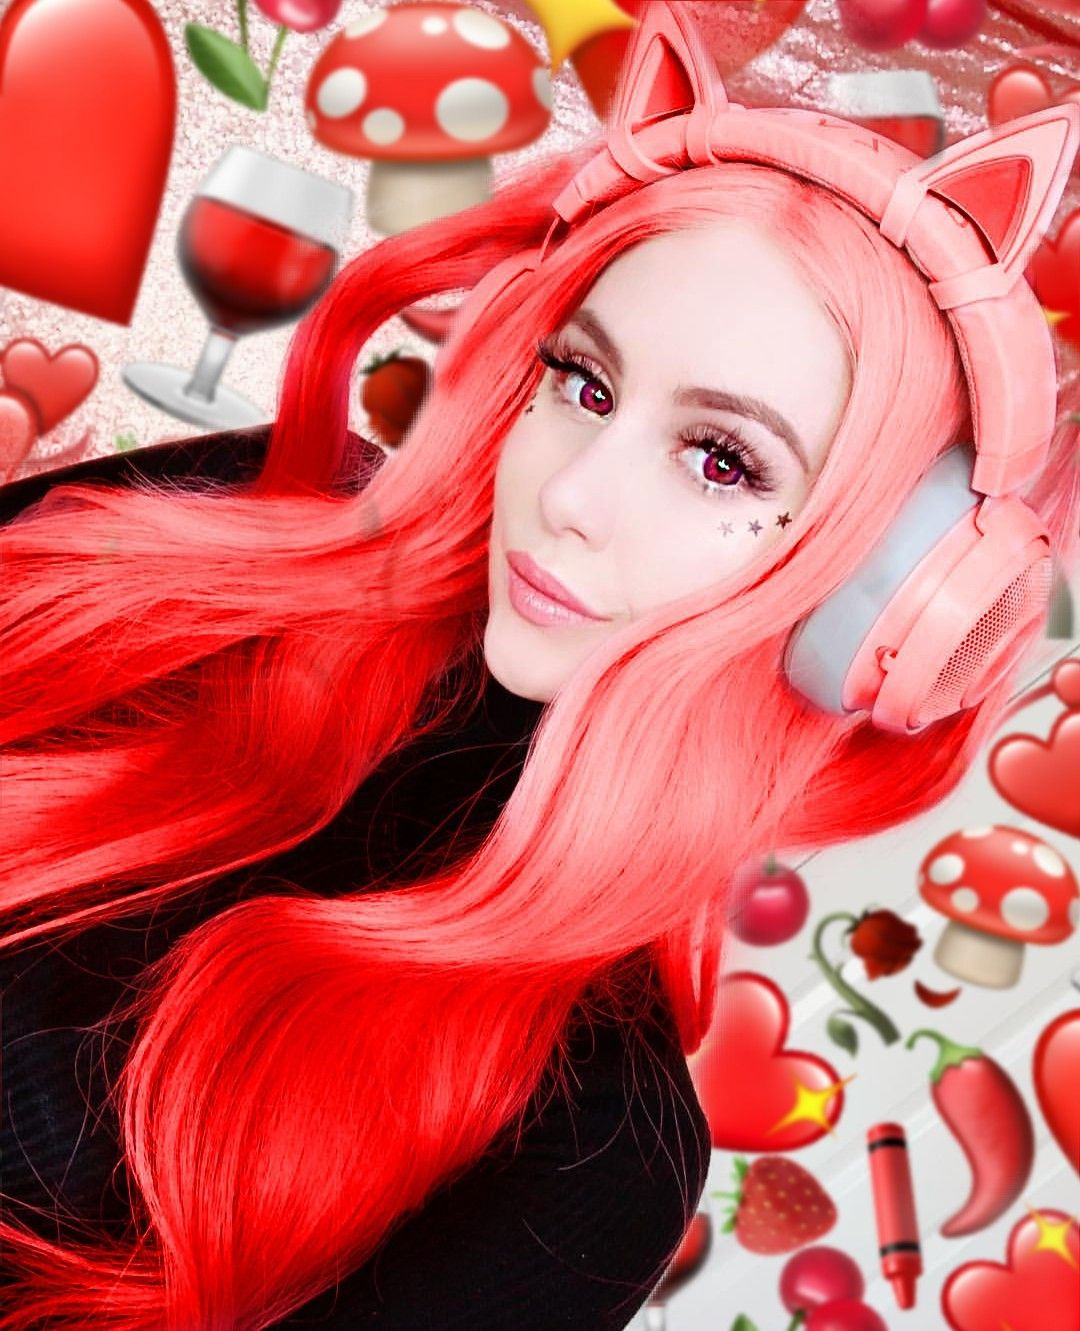 Pin By Irisa Kazaine On Leah Ashe Roblox Pictures Leah